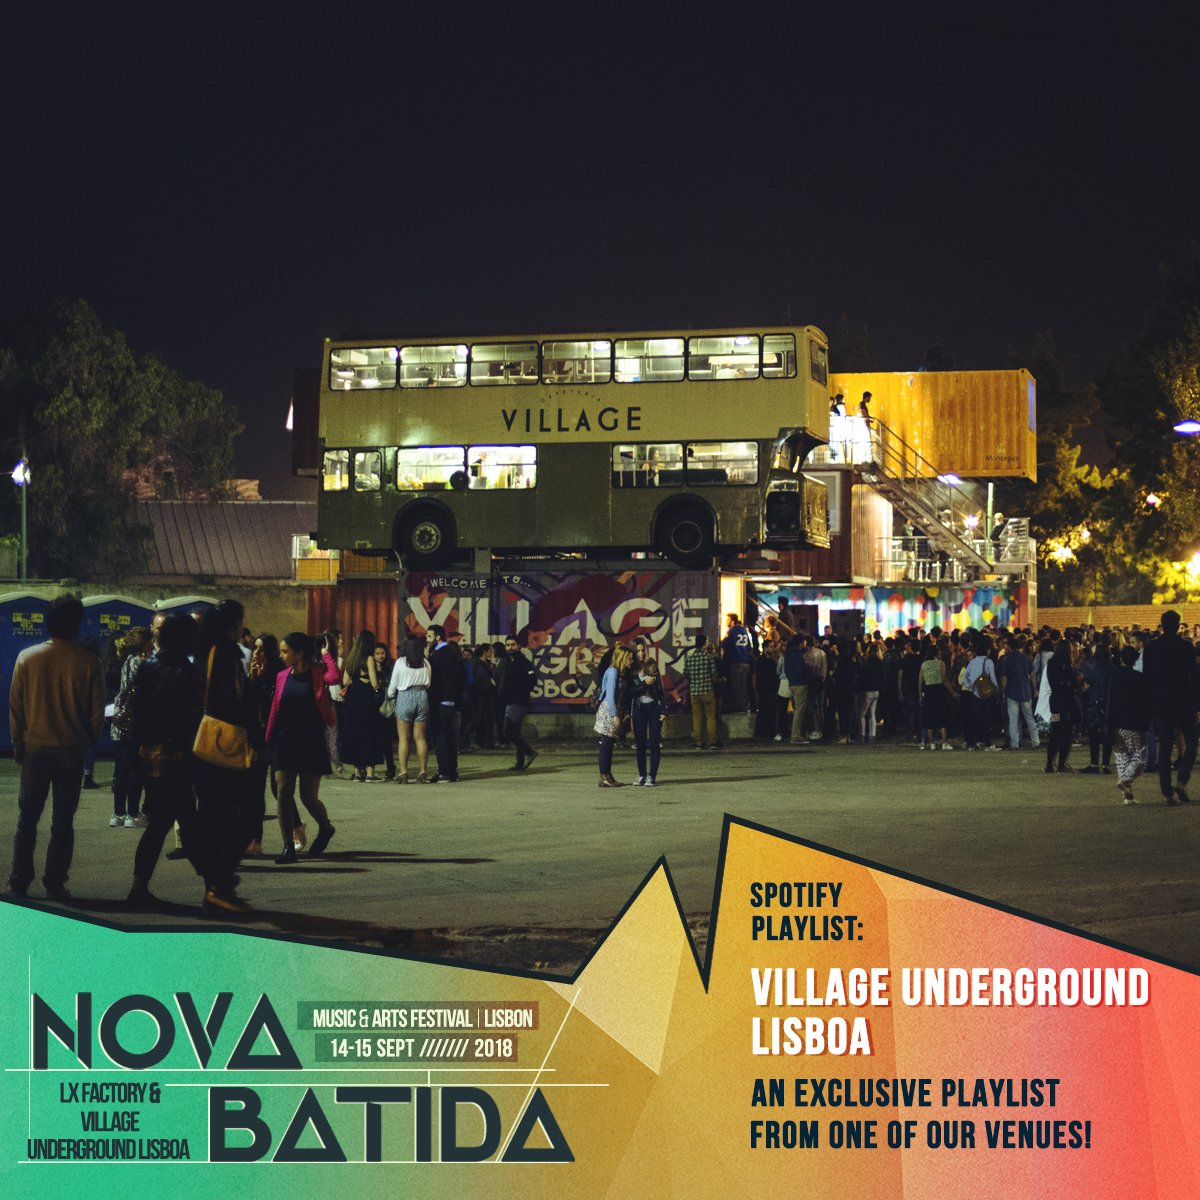 Check out these killer playlists from our Portuguese brothers & Sisters, Village Underground Lisboa and @NovaBatida...